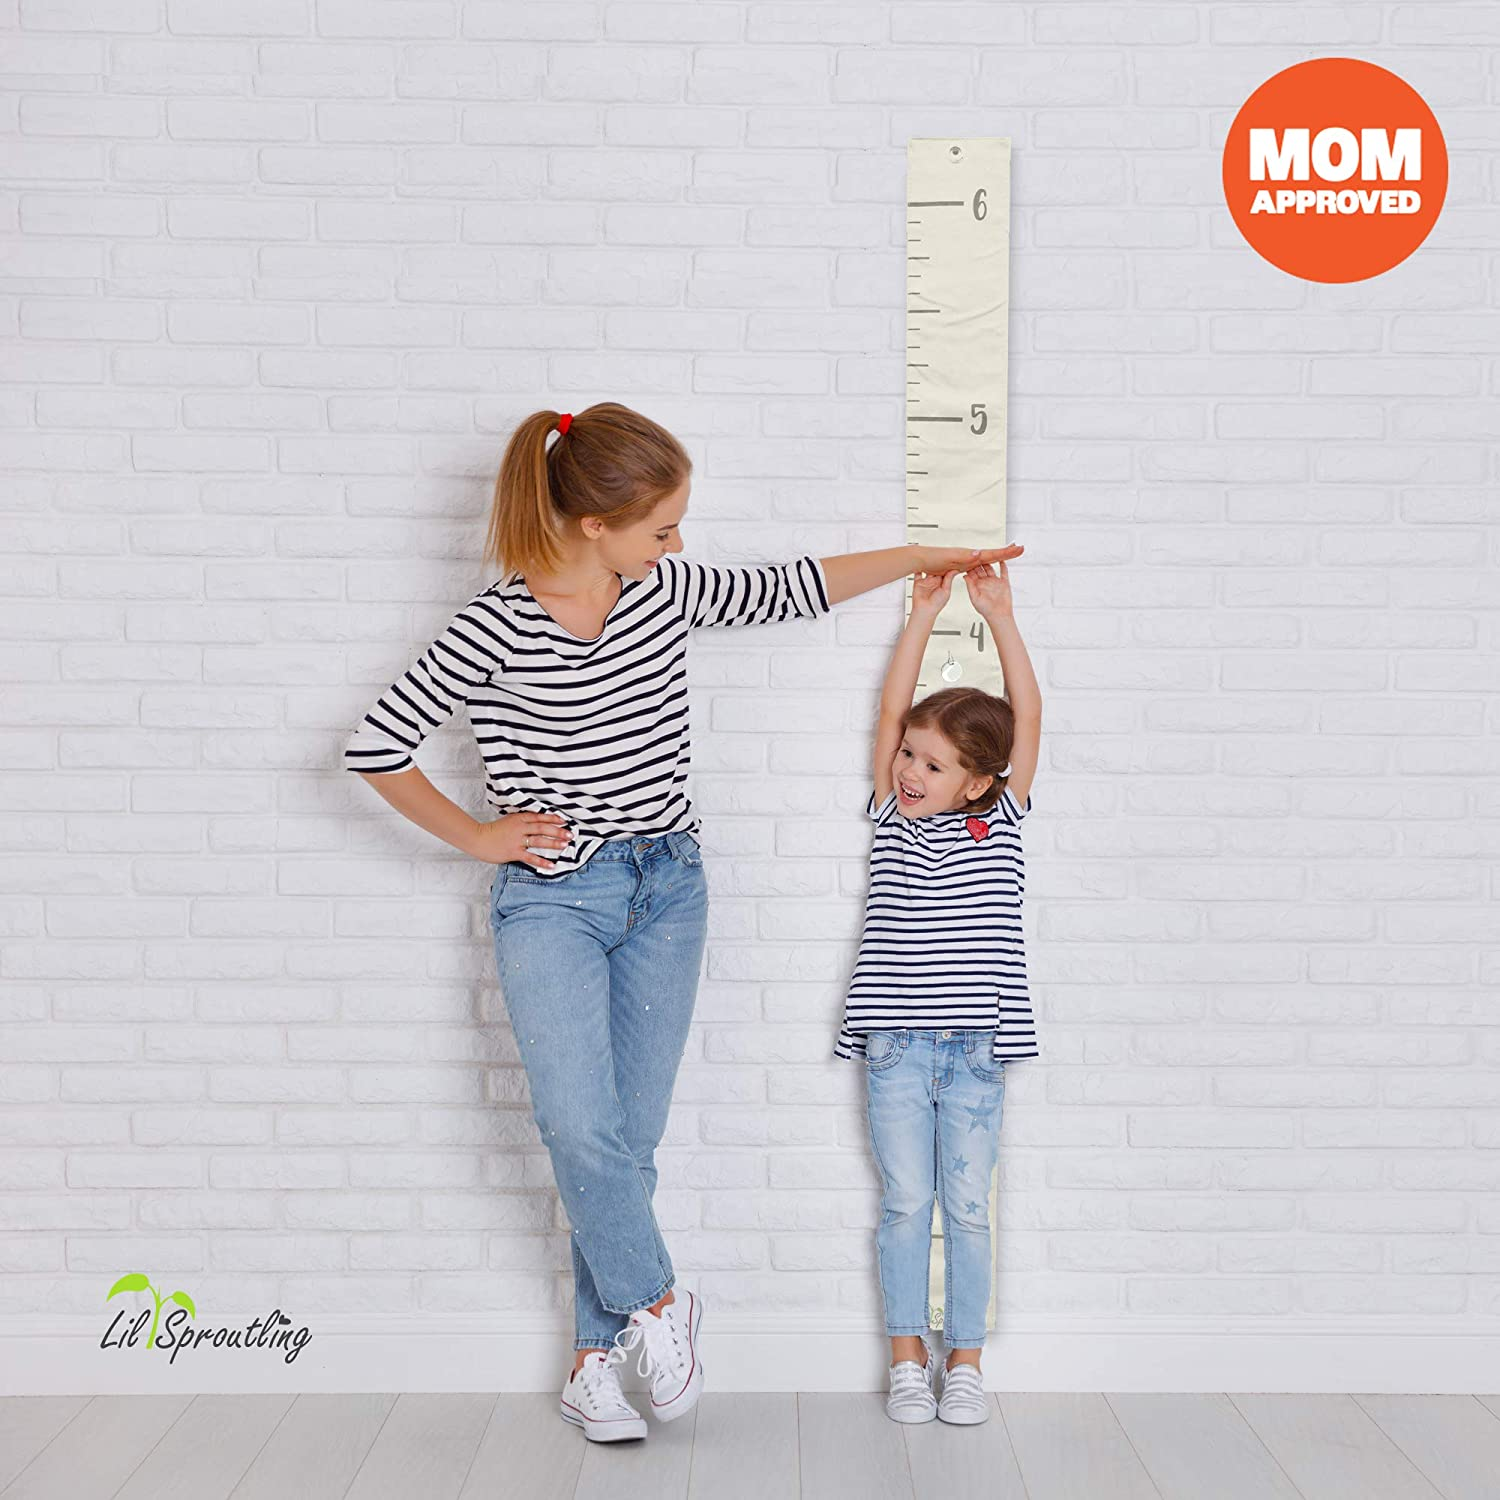 Lil Sproutling Natural Canvas Child Height Growth Chart - Includes 15 Key Tags & Gift Packaging - 69 x 5.5 - Neutral Design for Boys & Girls - Growth Wall Ruler Decor for Kids